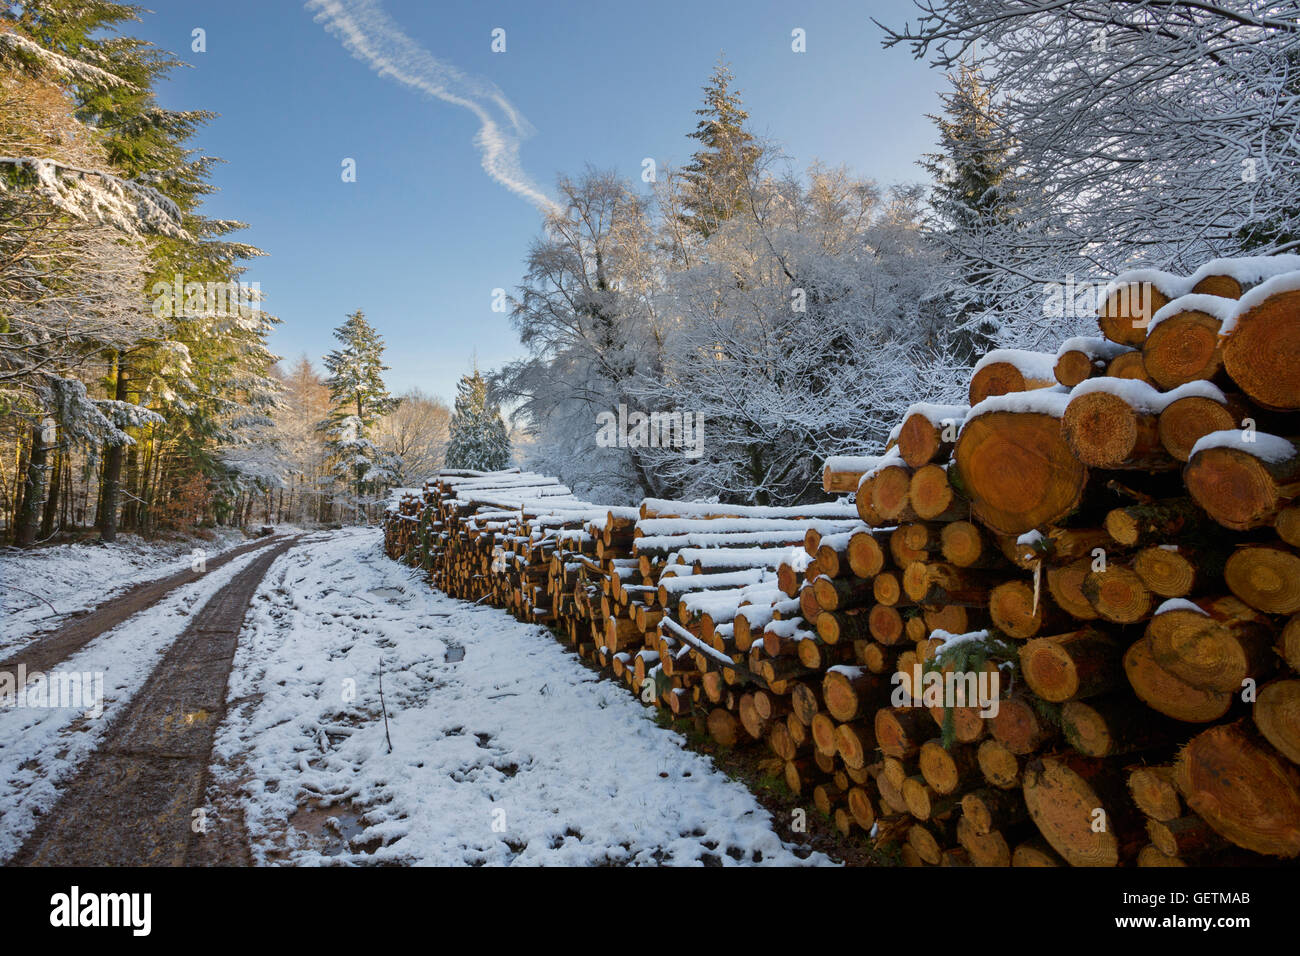 Softwood log stacks in a snowy forest in Wales. - Stock Image